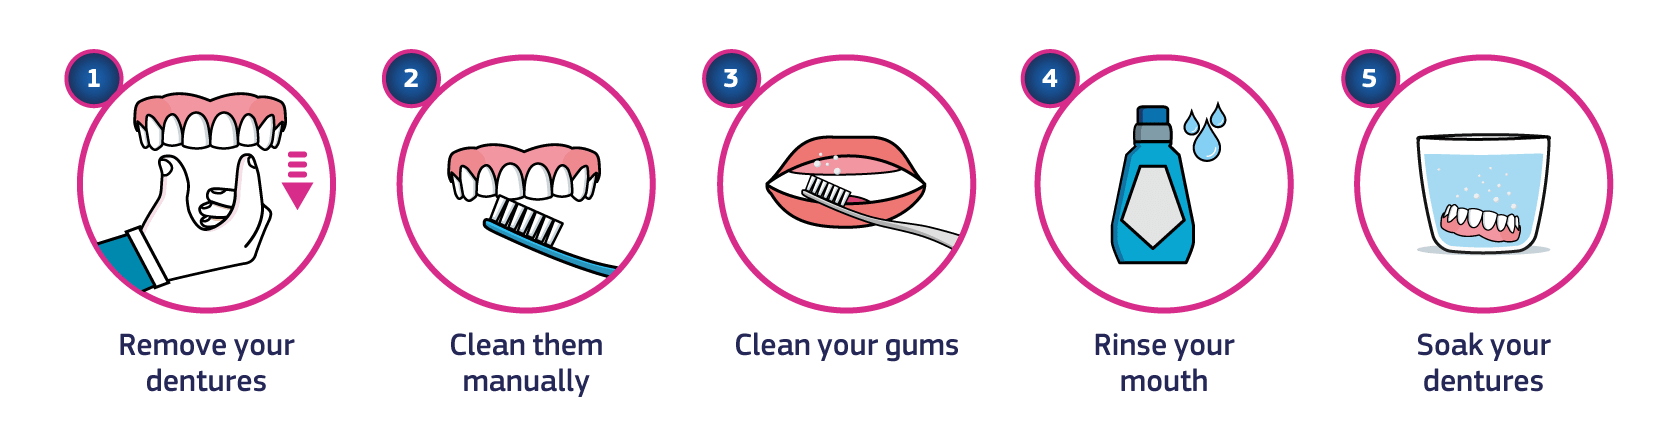 An infographic showing the step-by-step procedure on how to remove tartar from dentures: Step 1. Remove your dentures. Step 2. Clean them manually. Step 3. Clean your gums. Step 4. Rinse your mouth. Step 5. Soak your dentures.